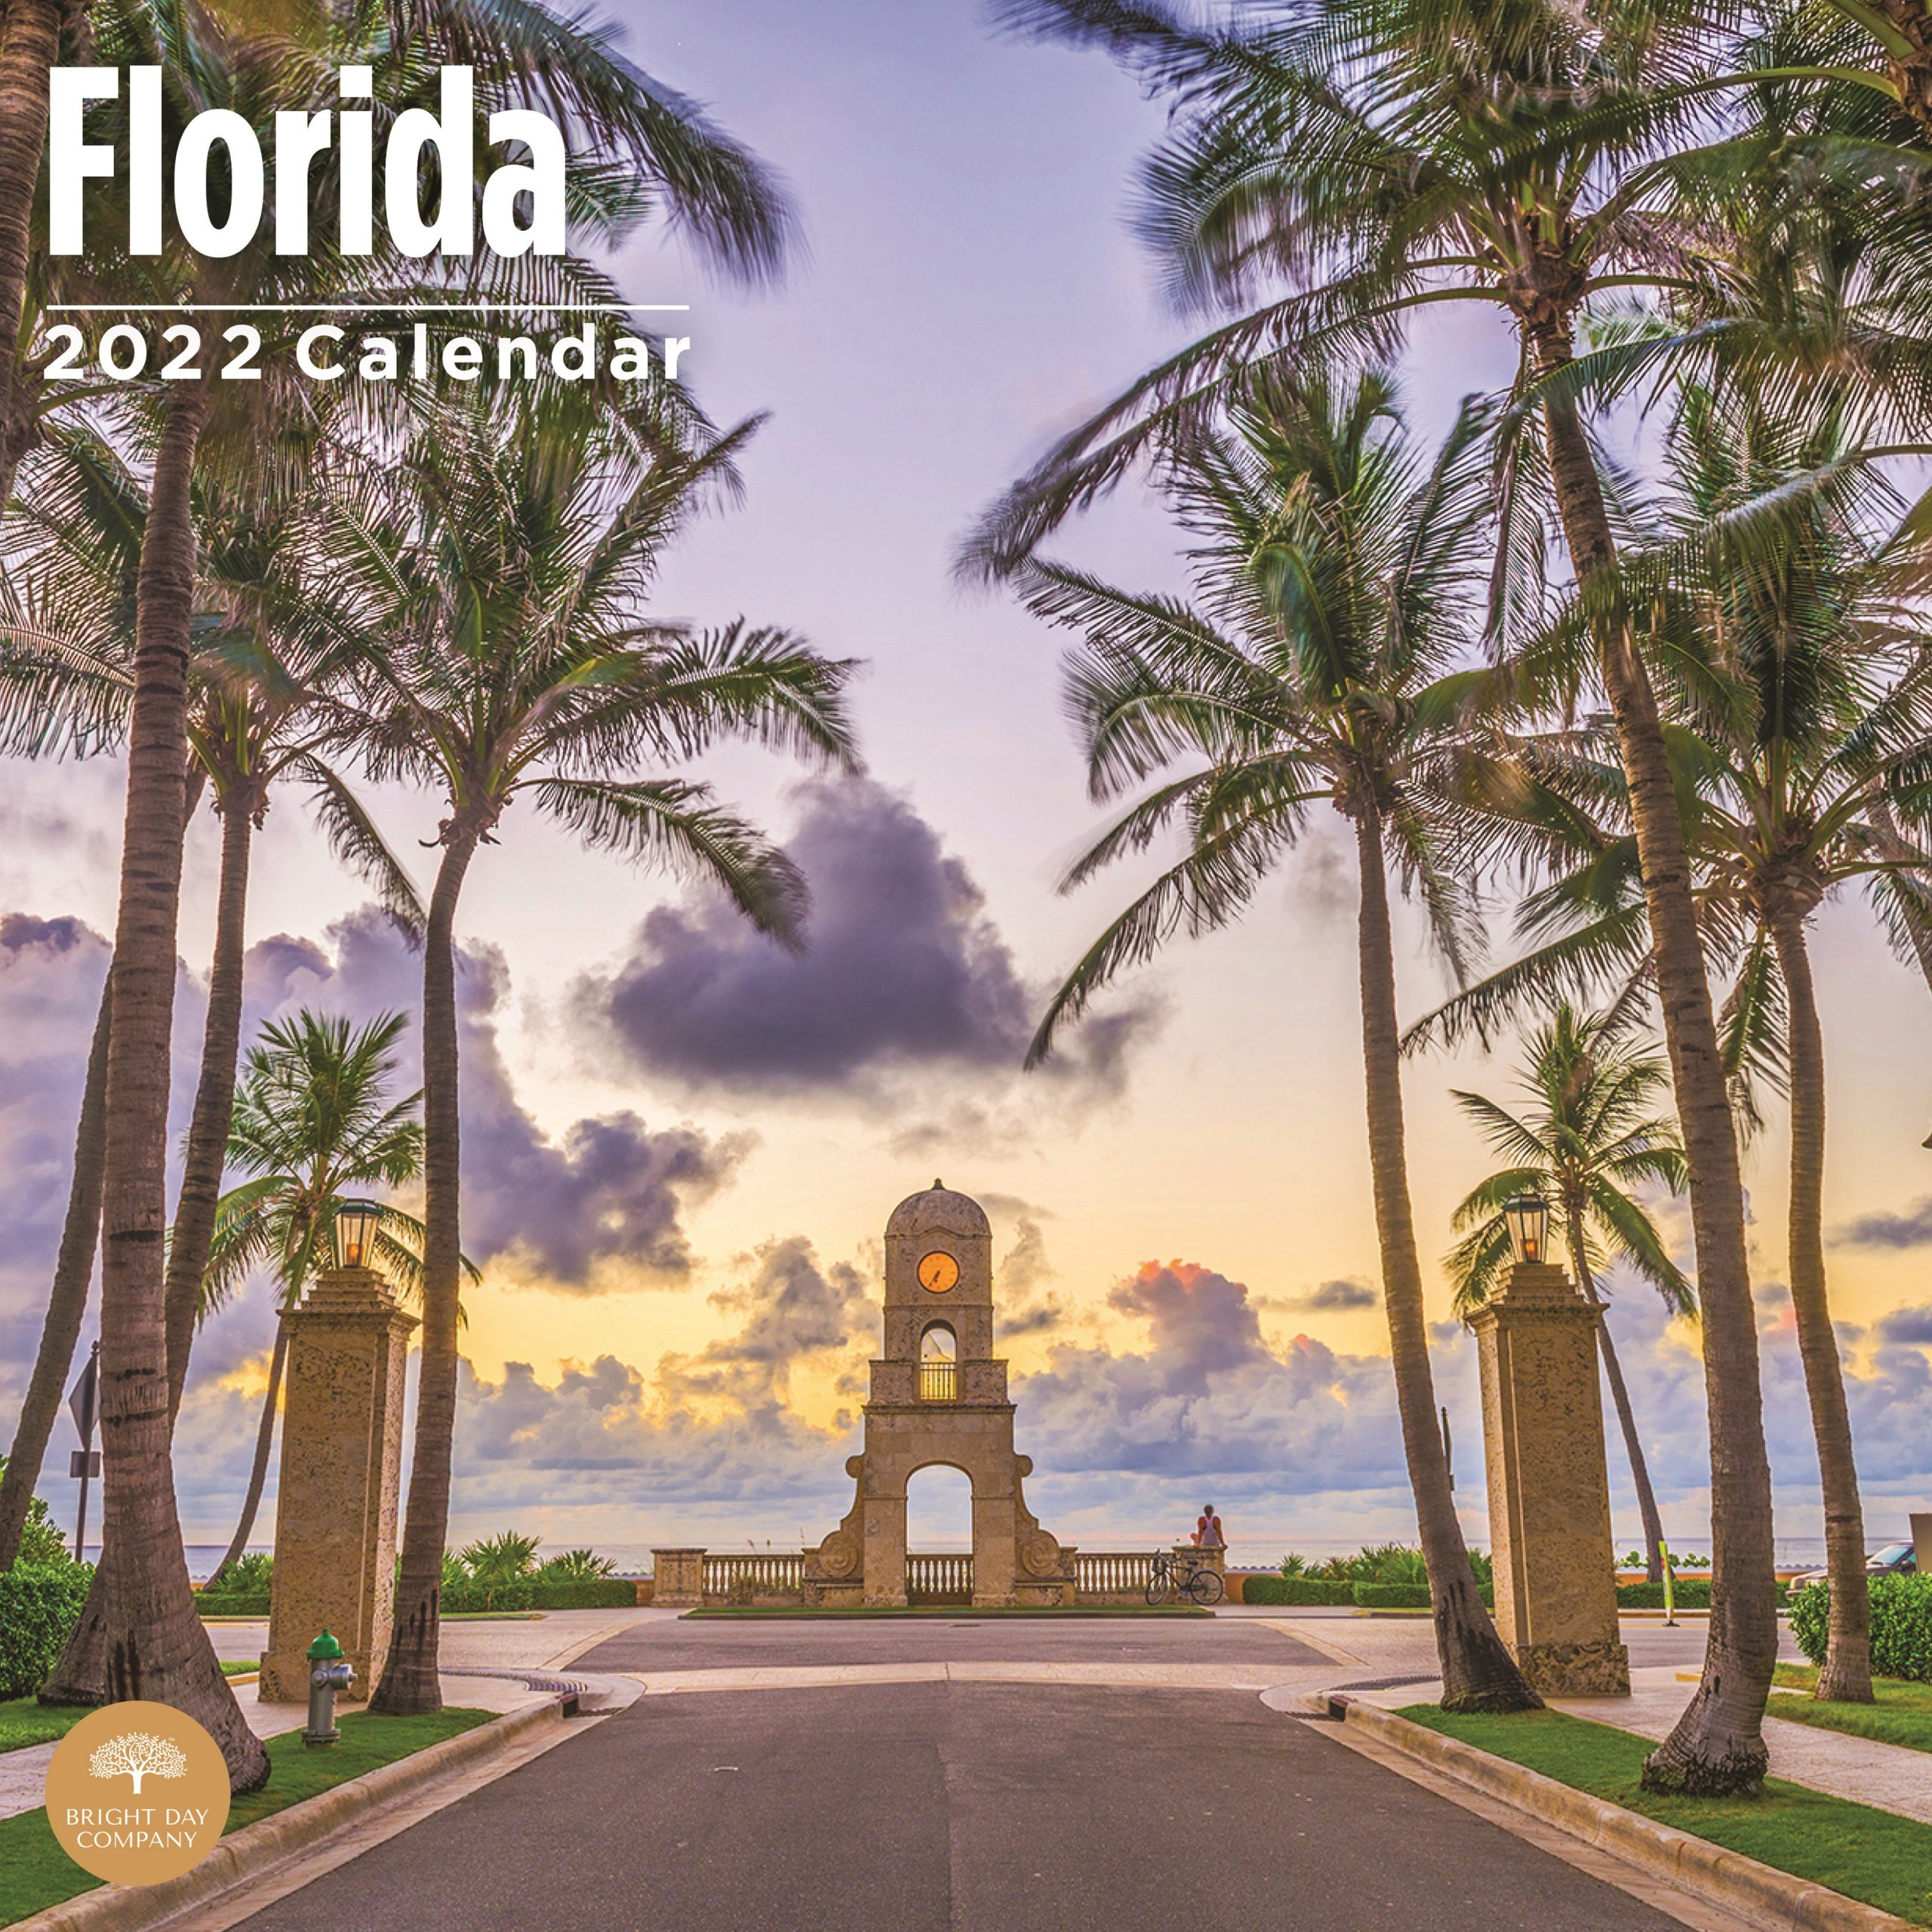 2022 Home Sweet Home Florida Wall Calendar by Bright Day, 12 x 12 Inch